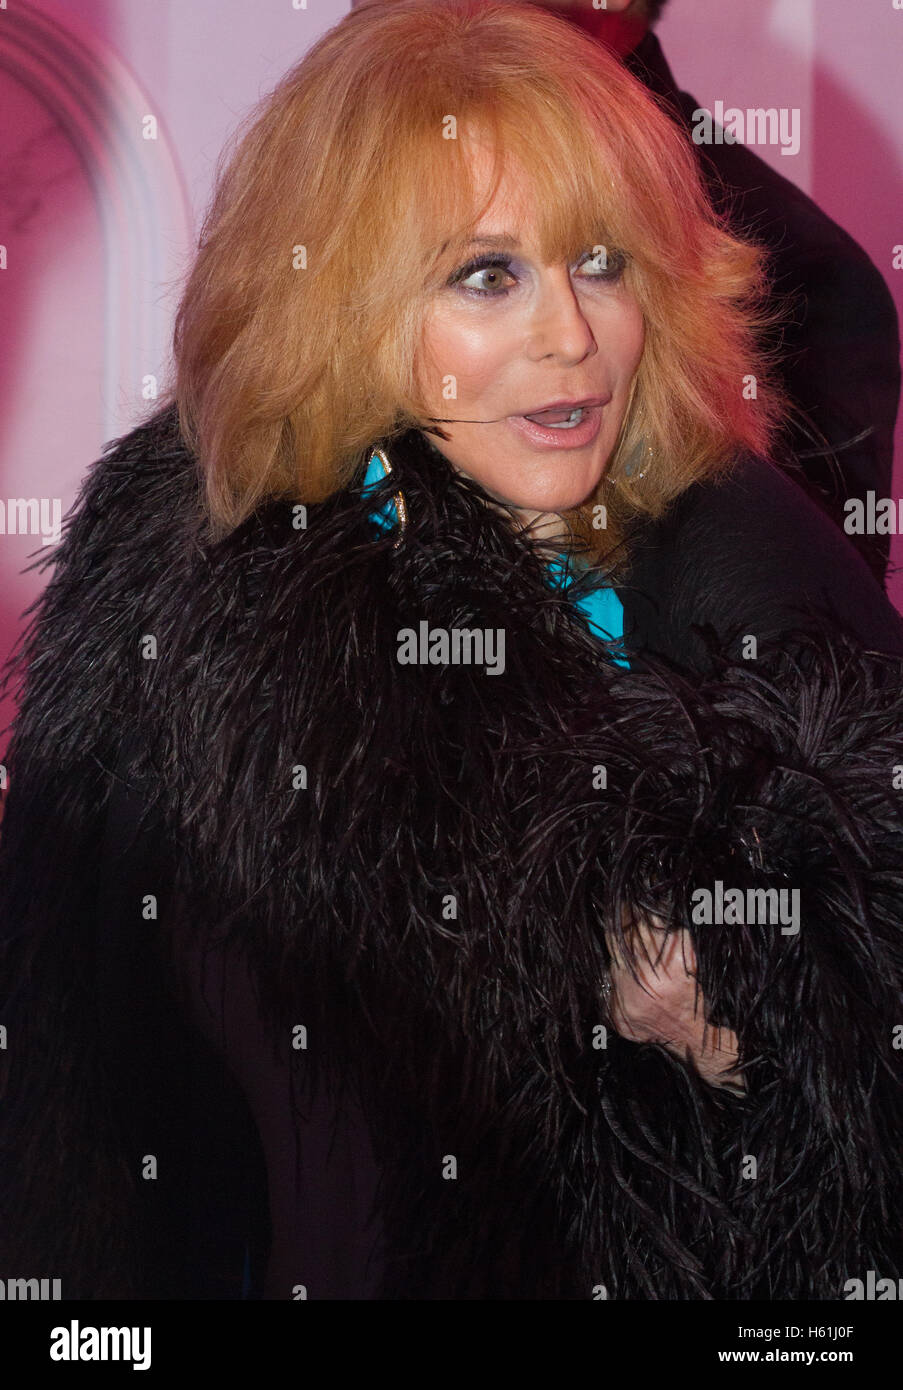 Ann-Margret arrives on the red carpet for the USO Gala at the DAR Constitution Hall on October 20, 2016 in Washington - Stock Image